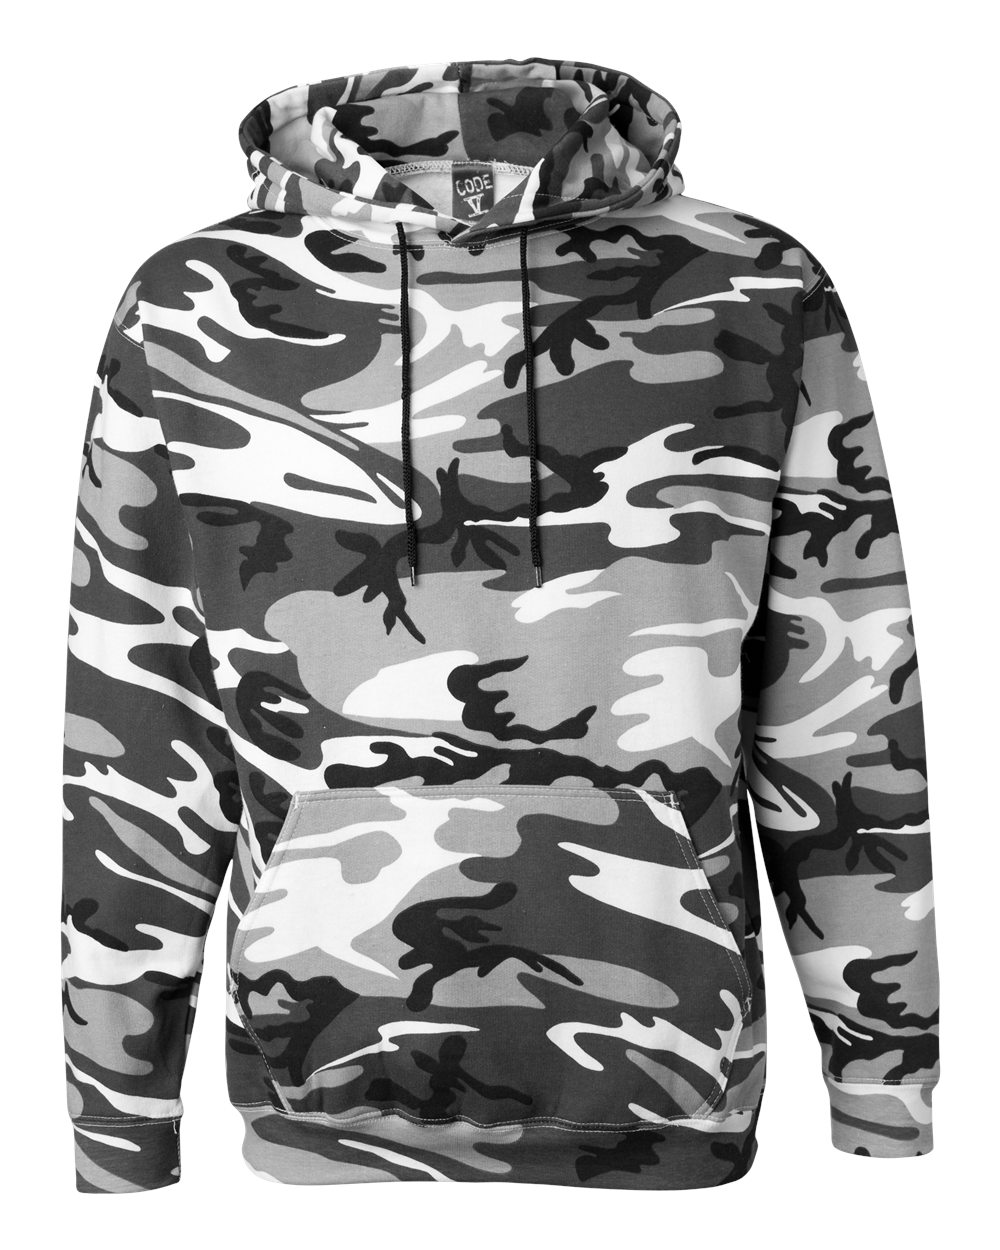 Code V Mens Camouflage Pullover Hooded Sweatshirt Hoodie 3969 up ...